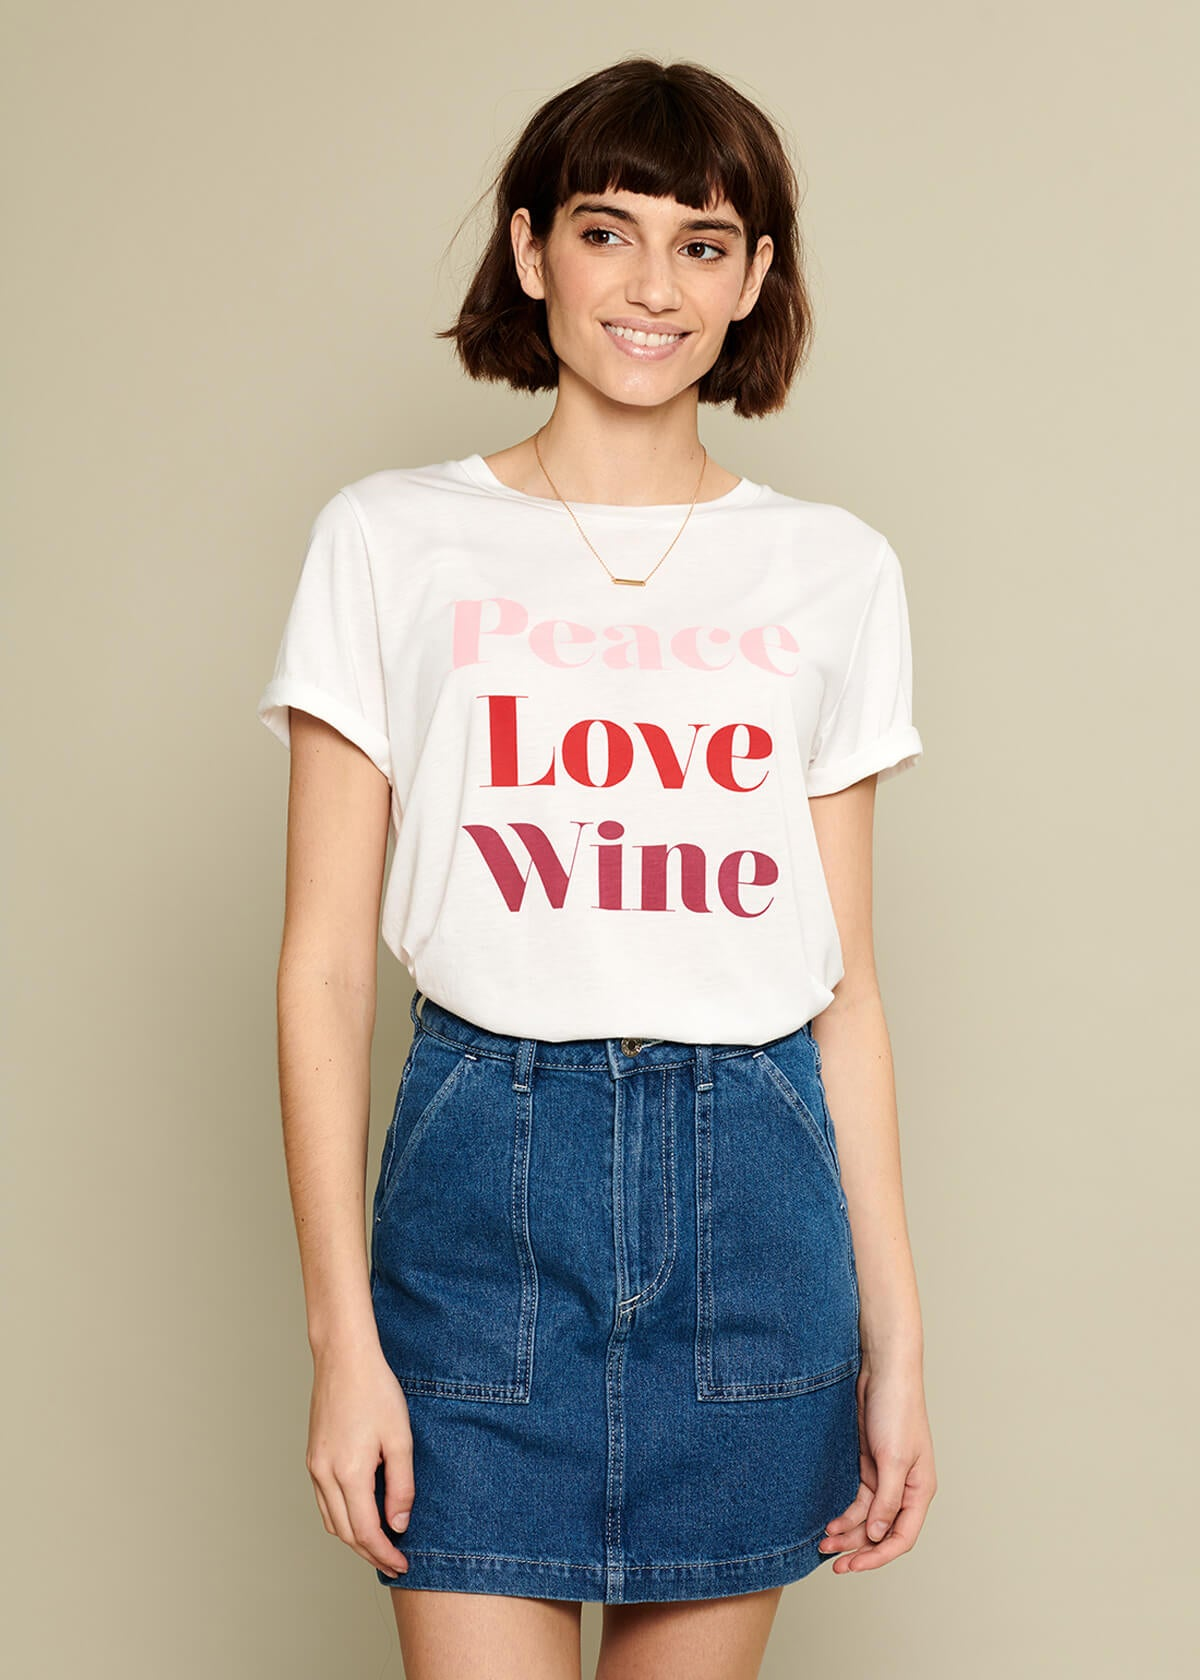 Lola - Loose Tee - Peace Love Wine - White